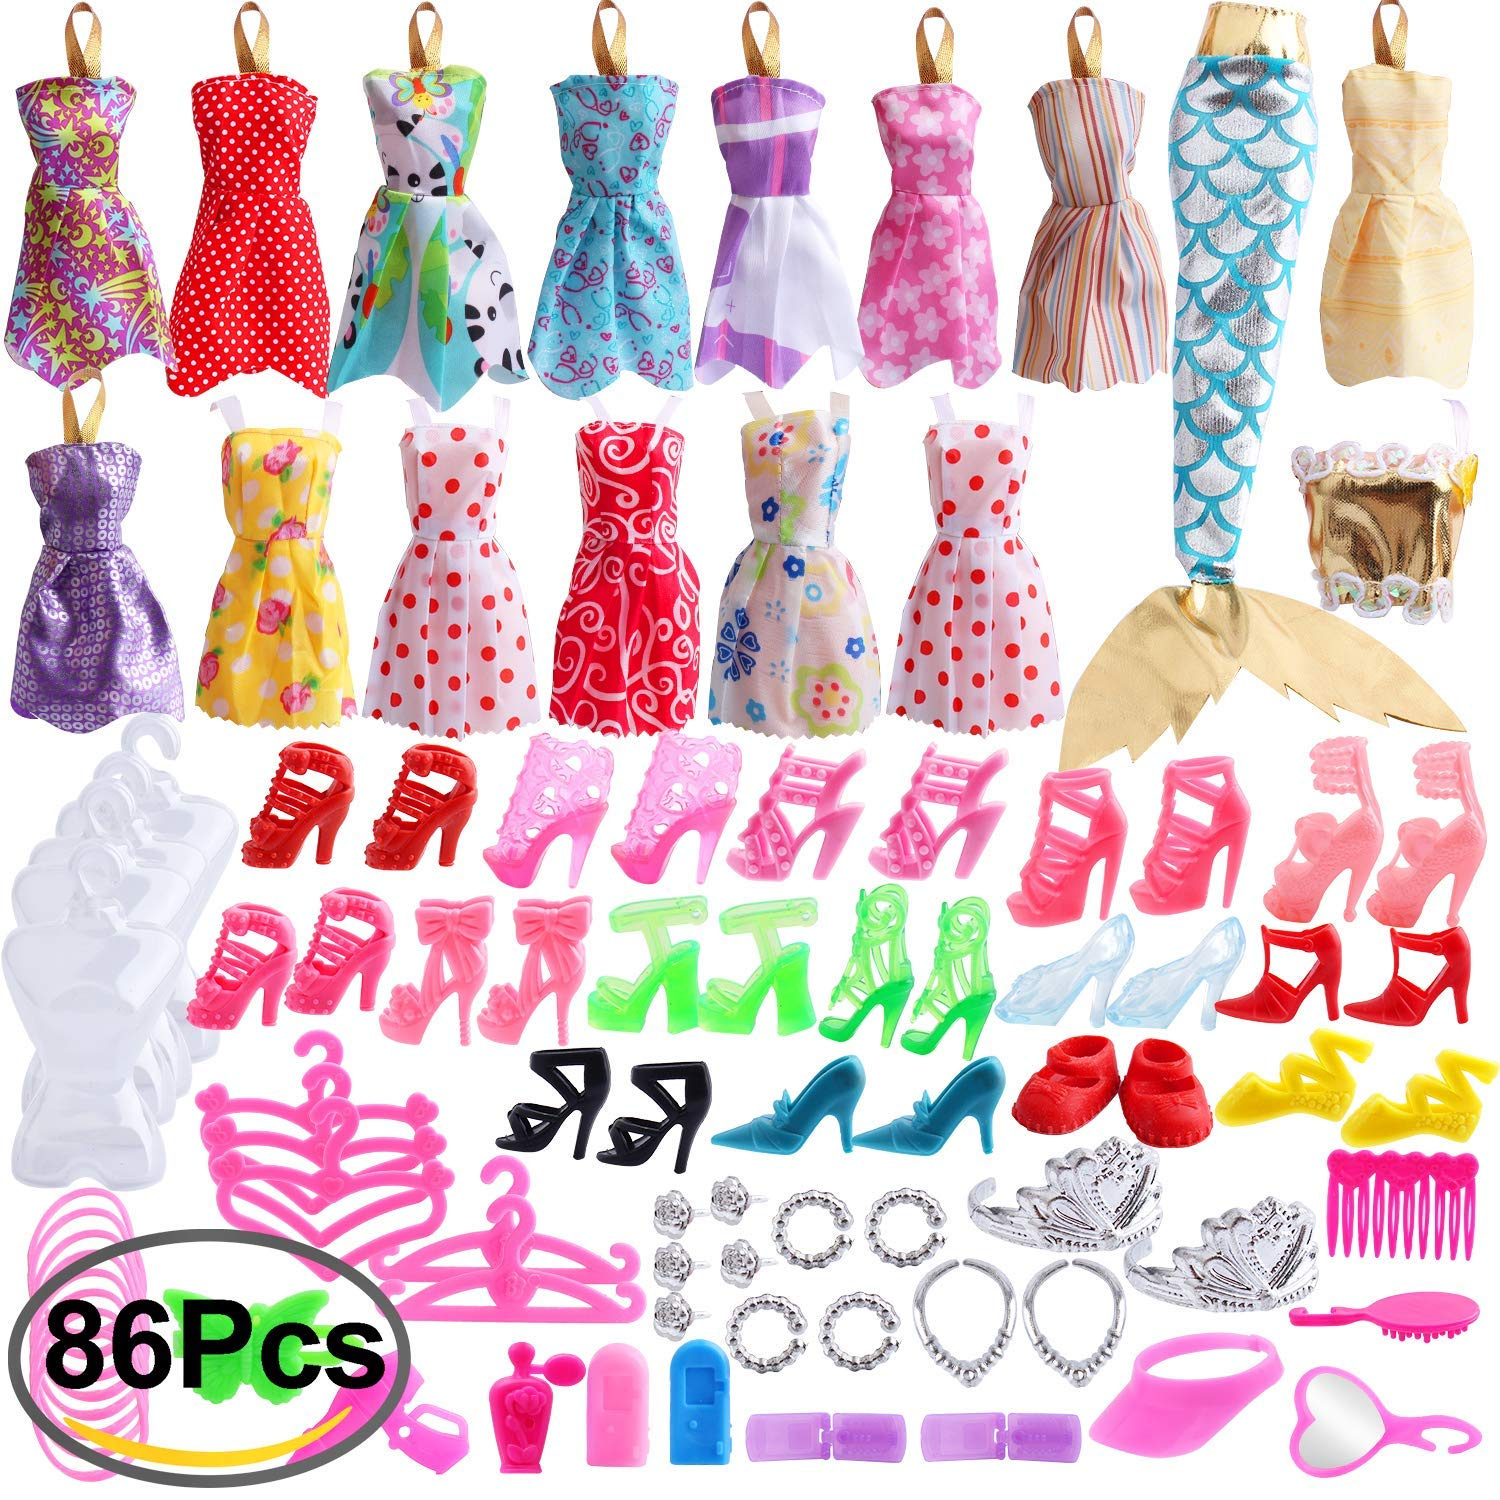 2ea9e9c43 Barbie Doll Clothes Toys: Buy Online from Fishpond.co.nz